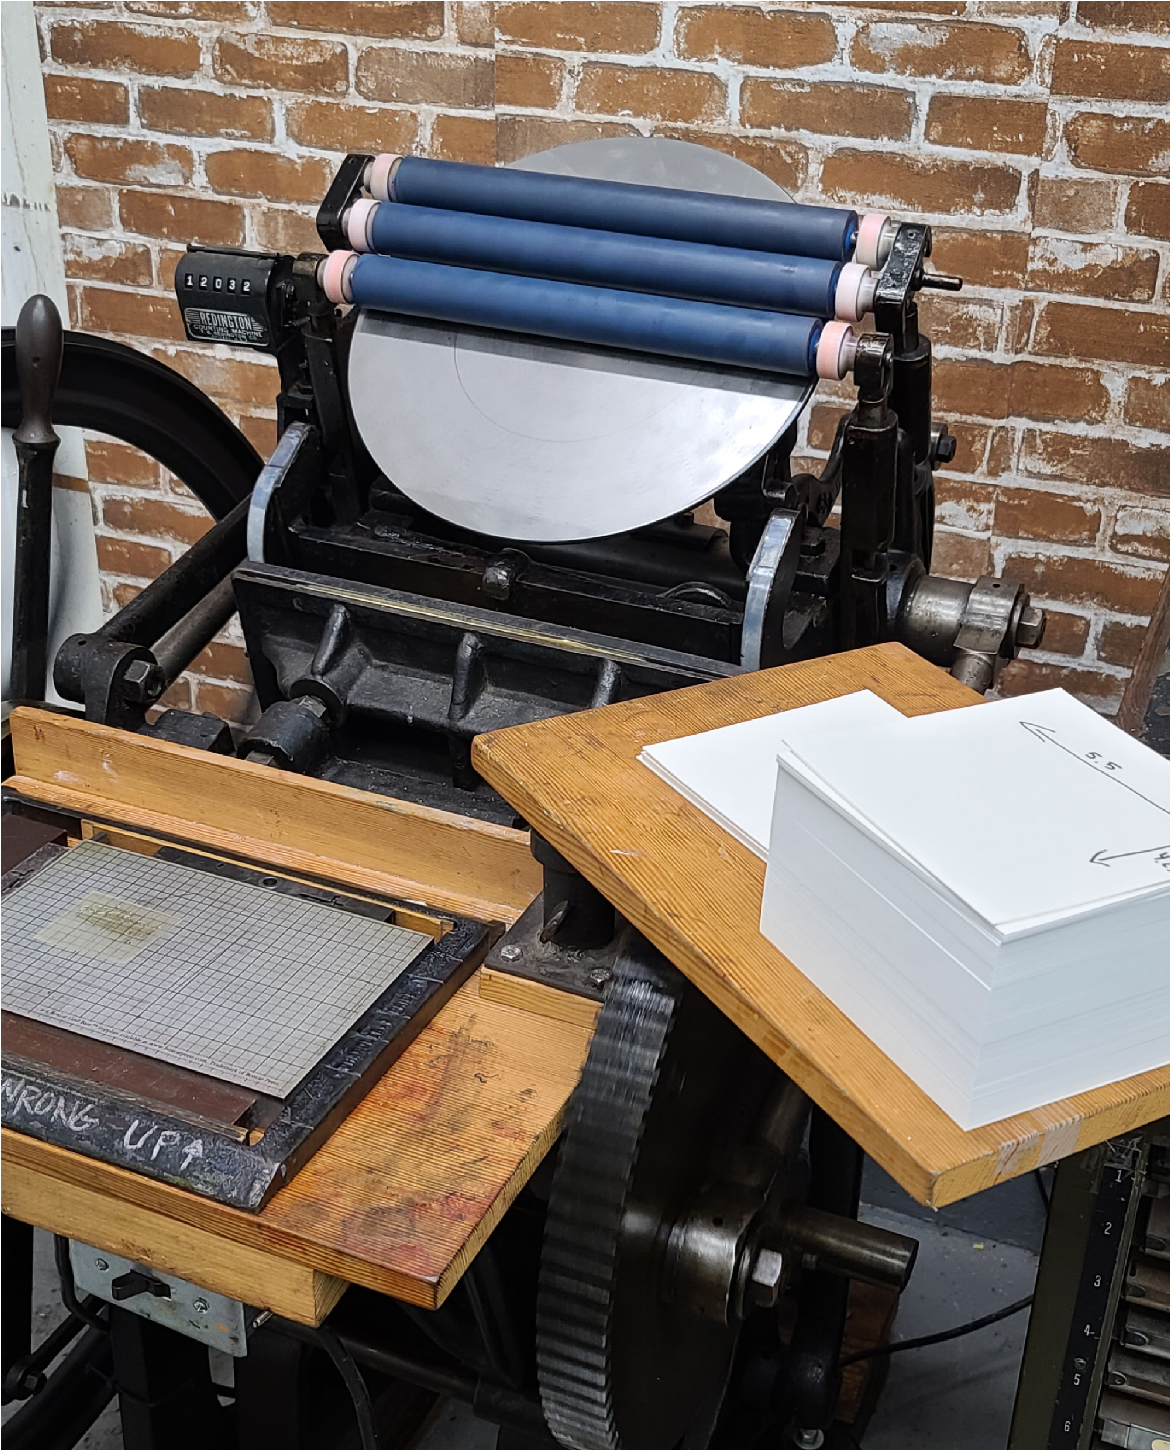 Image of a handfed Chandler and Price letterpress machine. Rollers are in the UP position, and there is a brick wall behind the press.